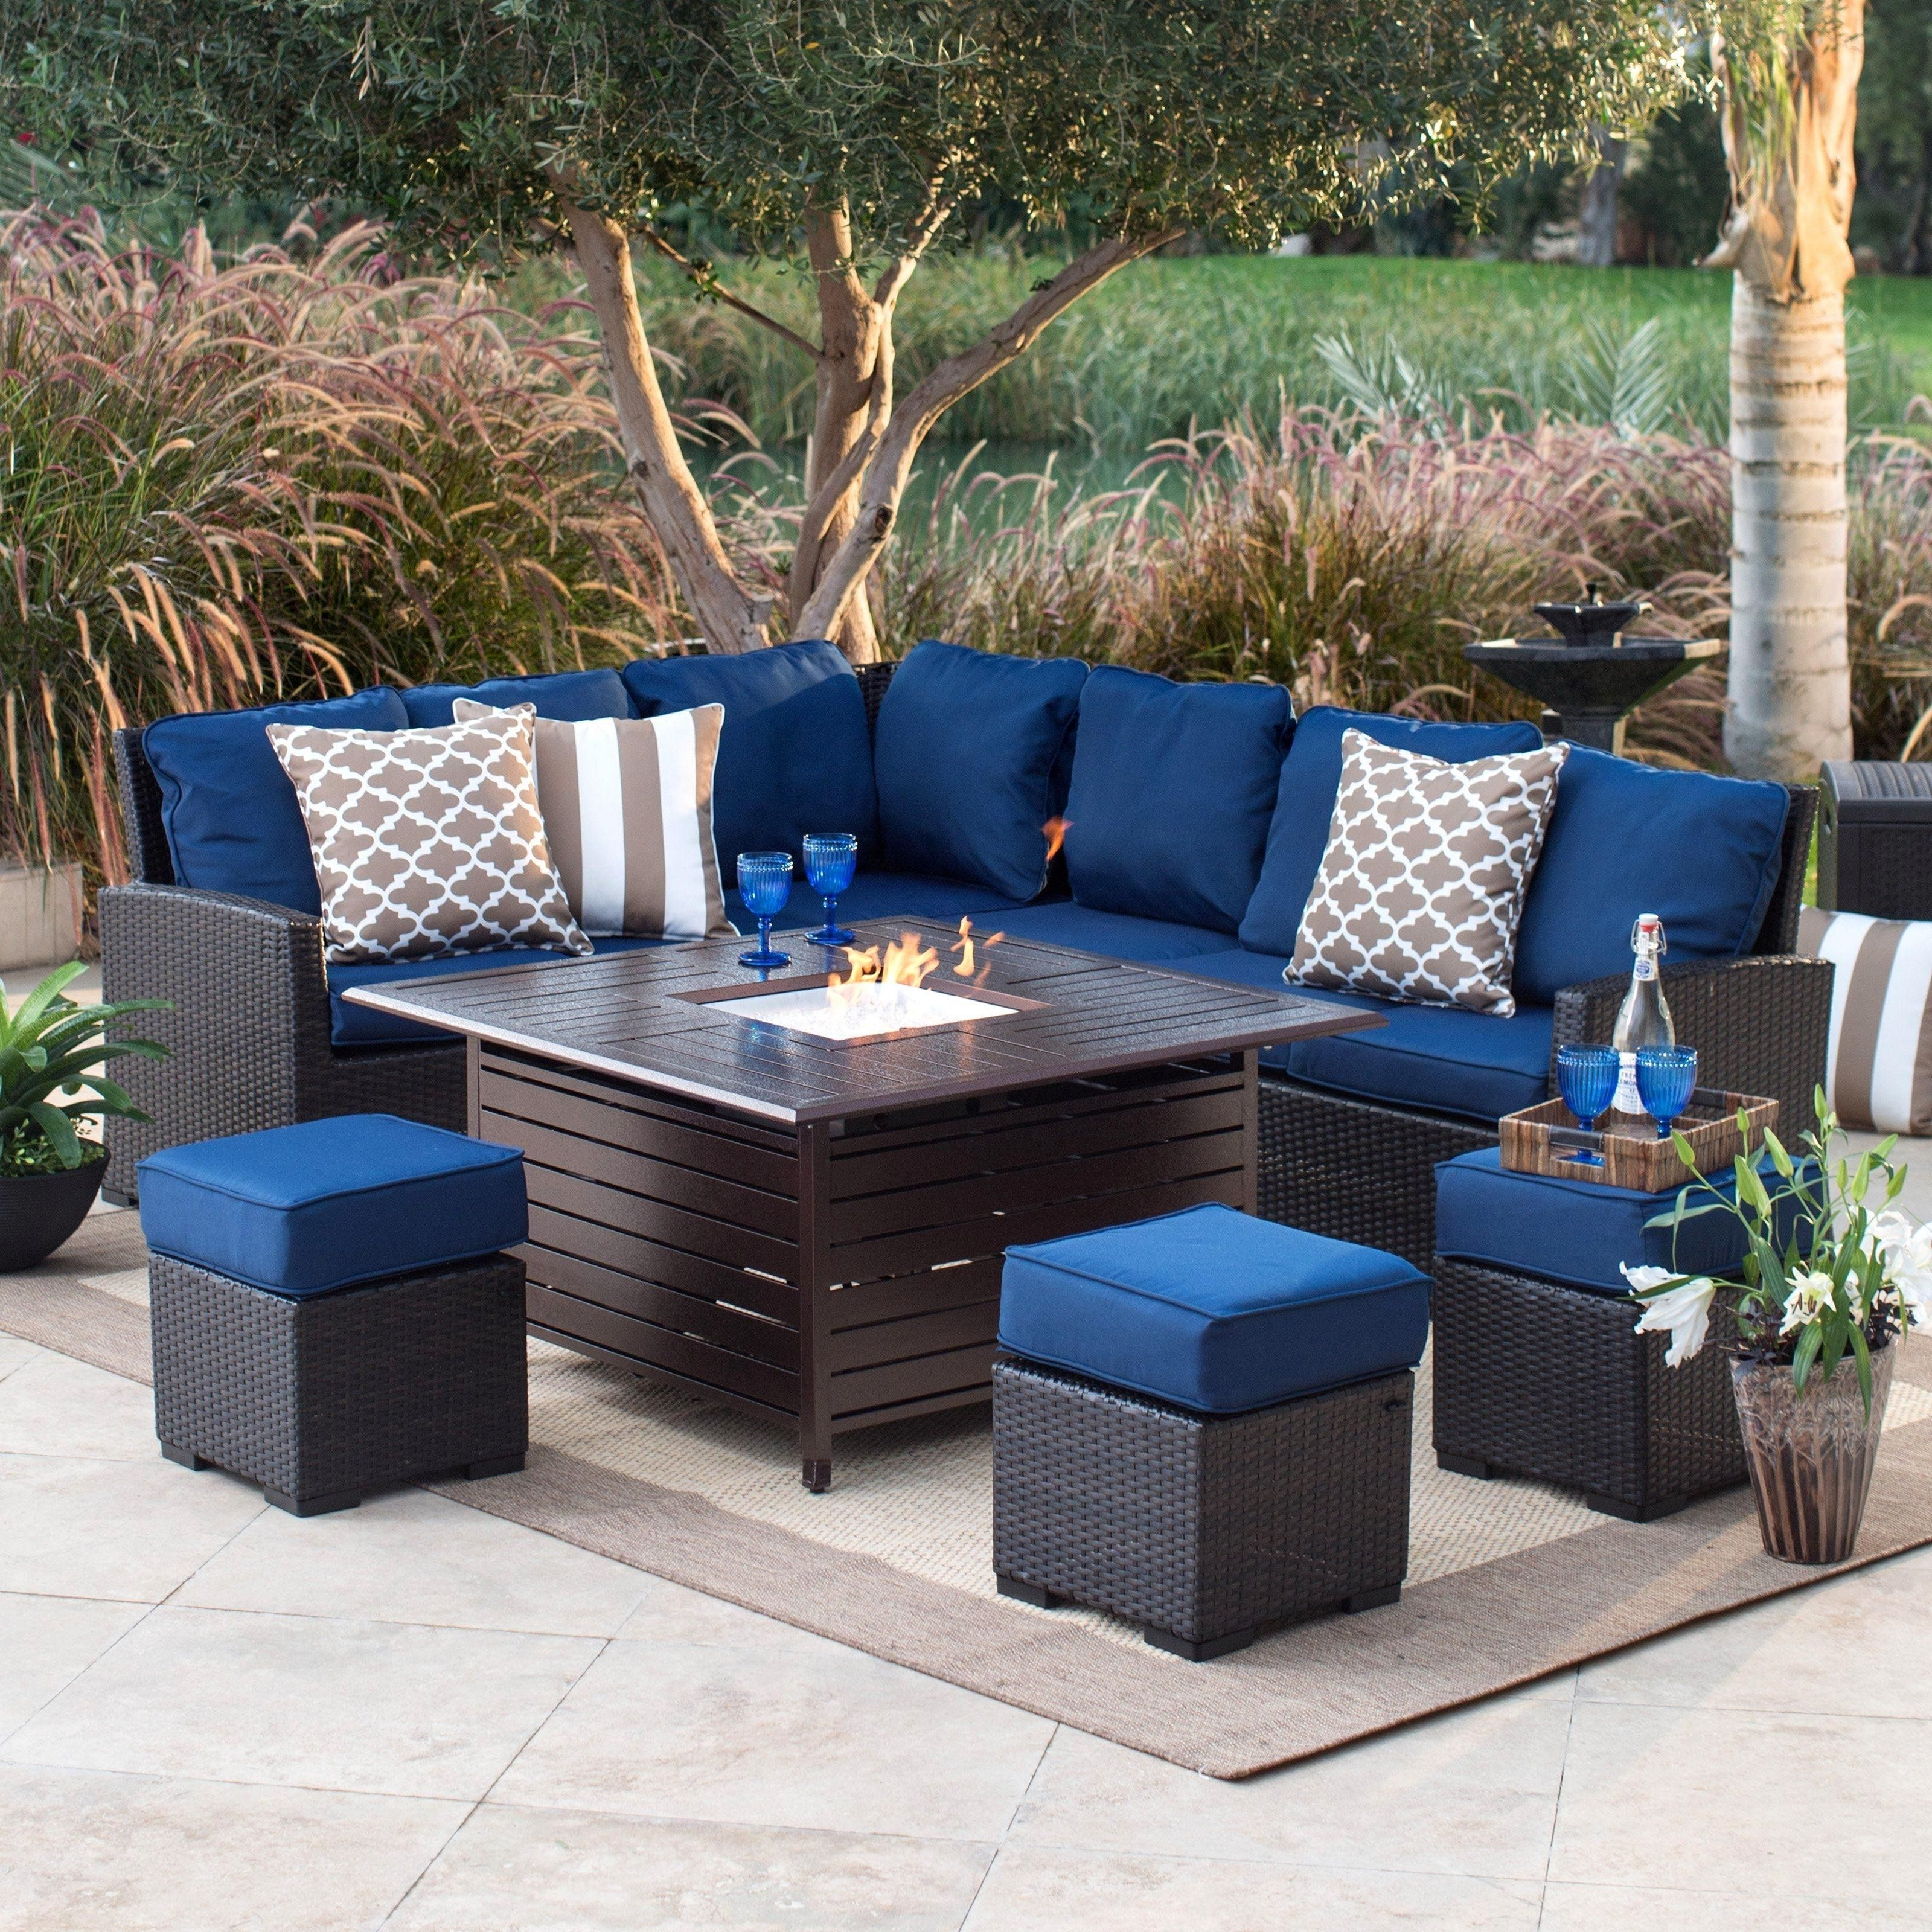 35 Extraordinary Outdoor Living Room